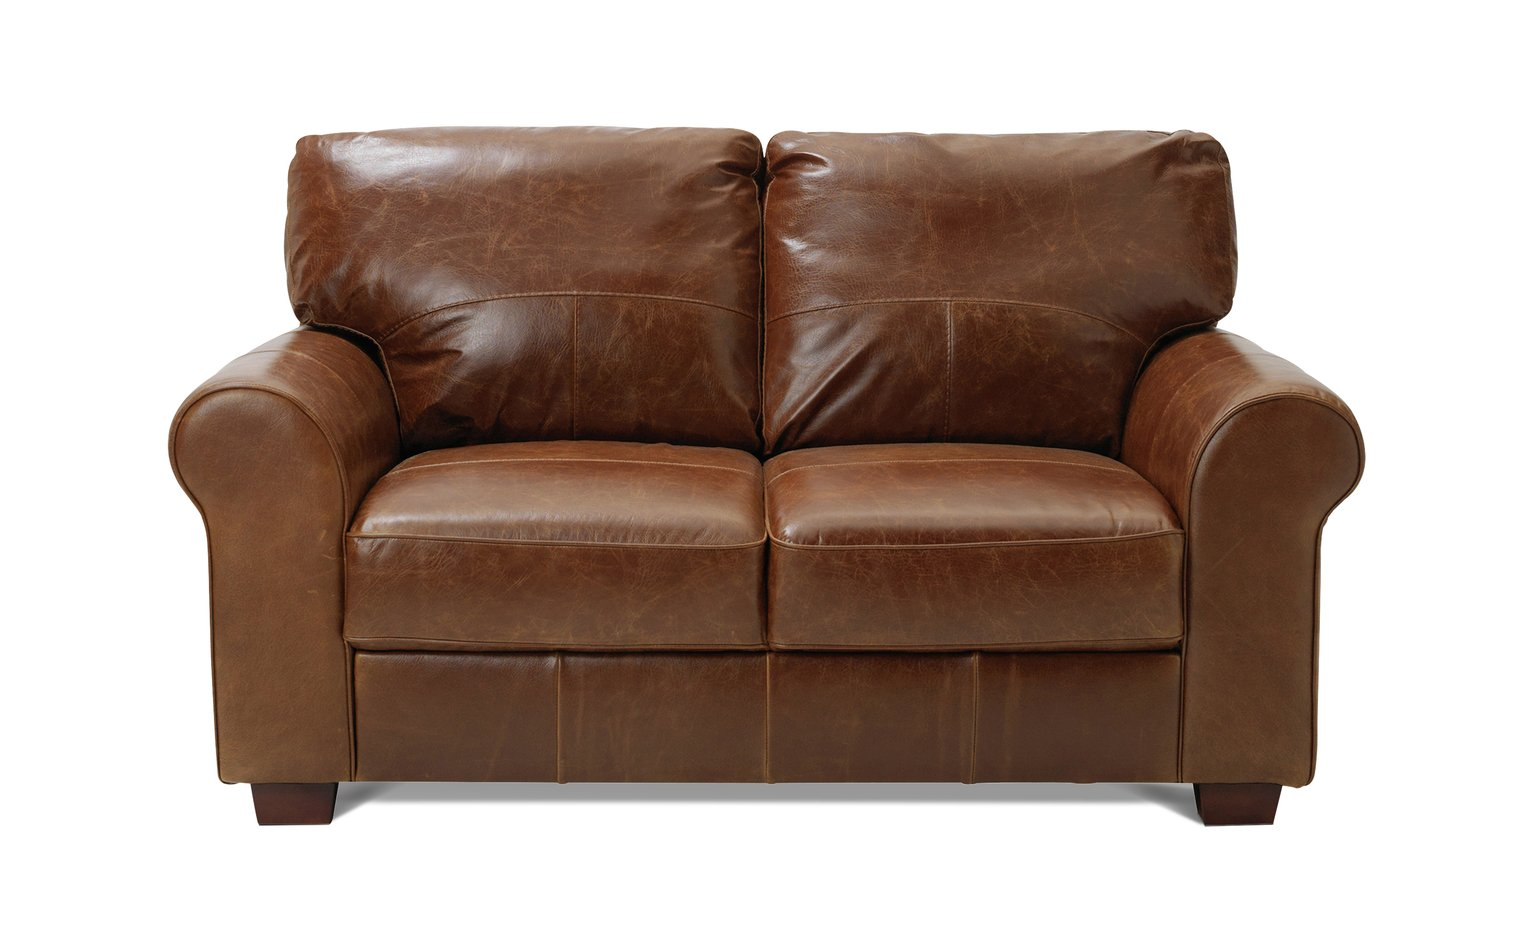 Heart Of House Salisbury 2 Seater Leather Sofa   Tan Part 49